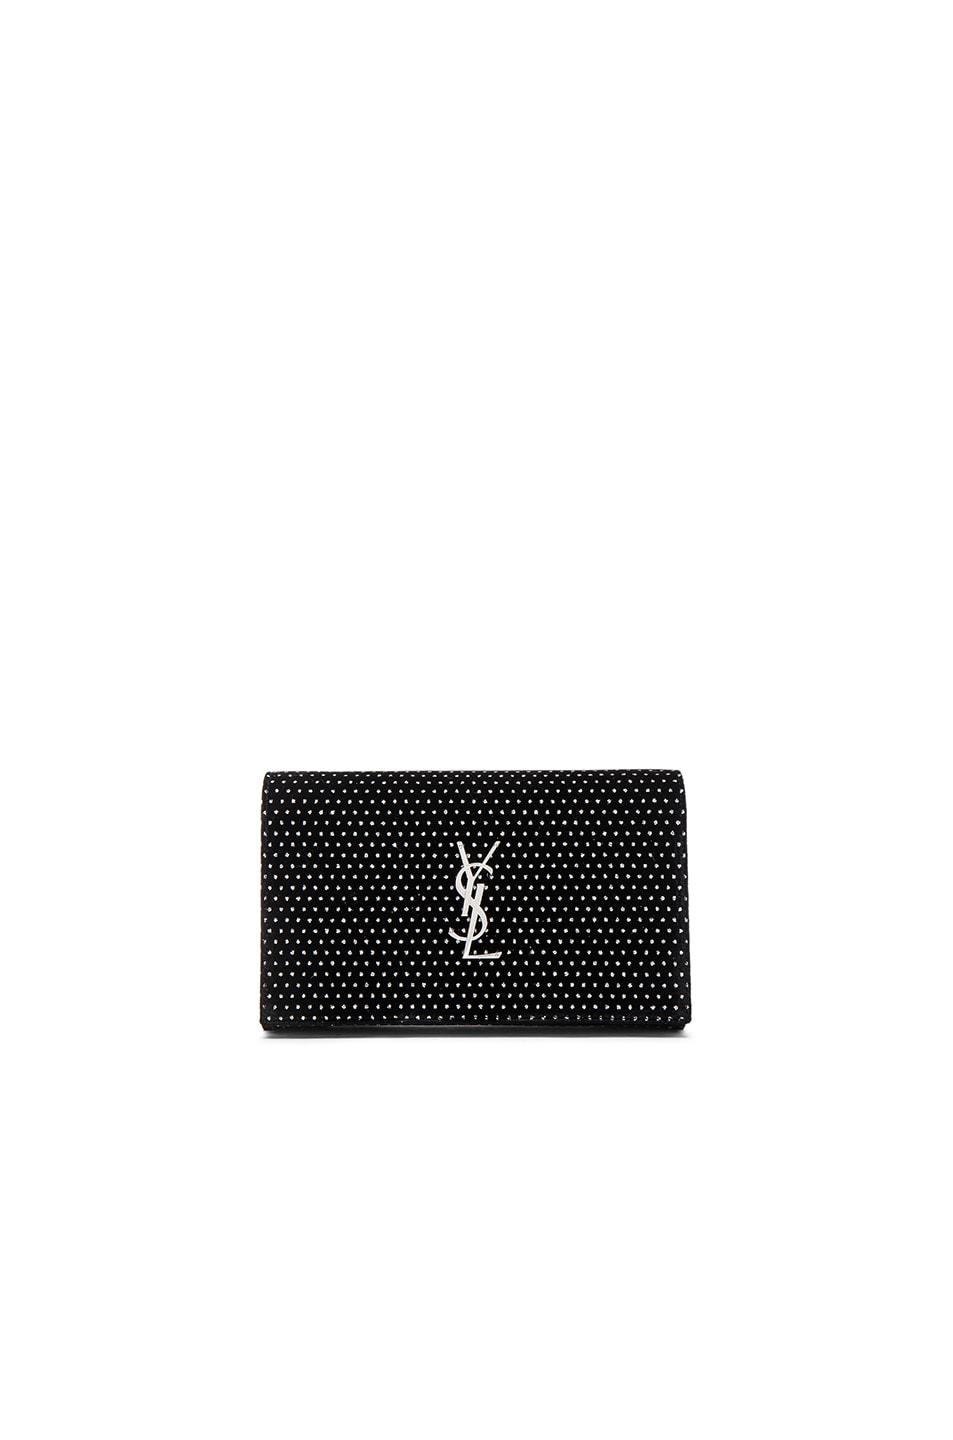 replica ysl handbags - yves saint laurent monogram python-stamped wallet-on-chain, ysl ...